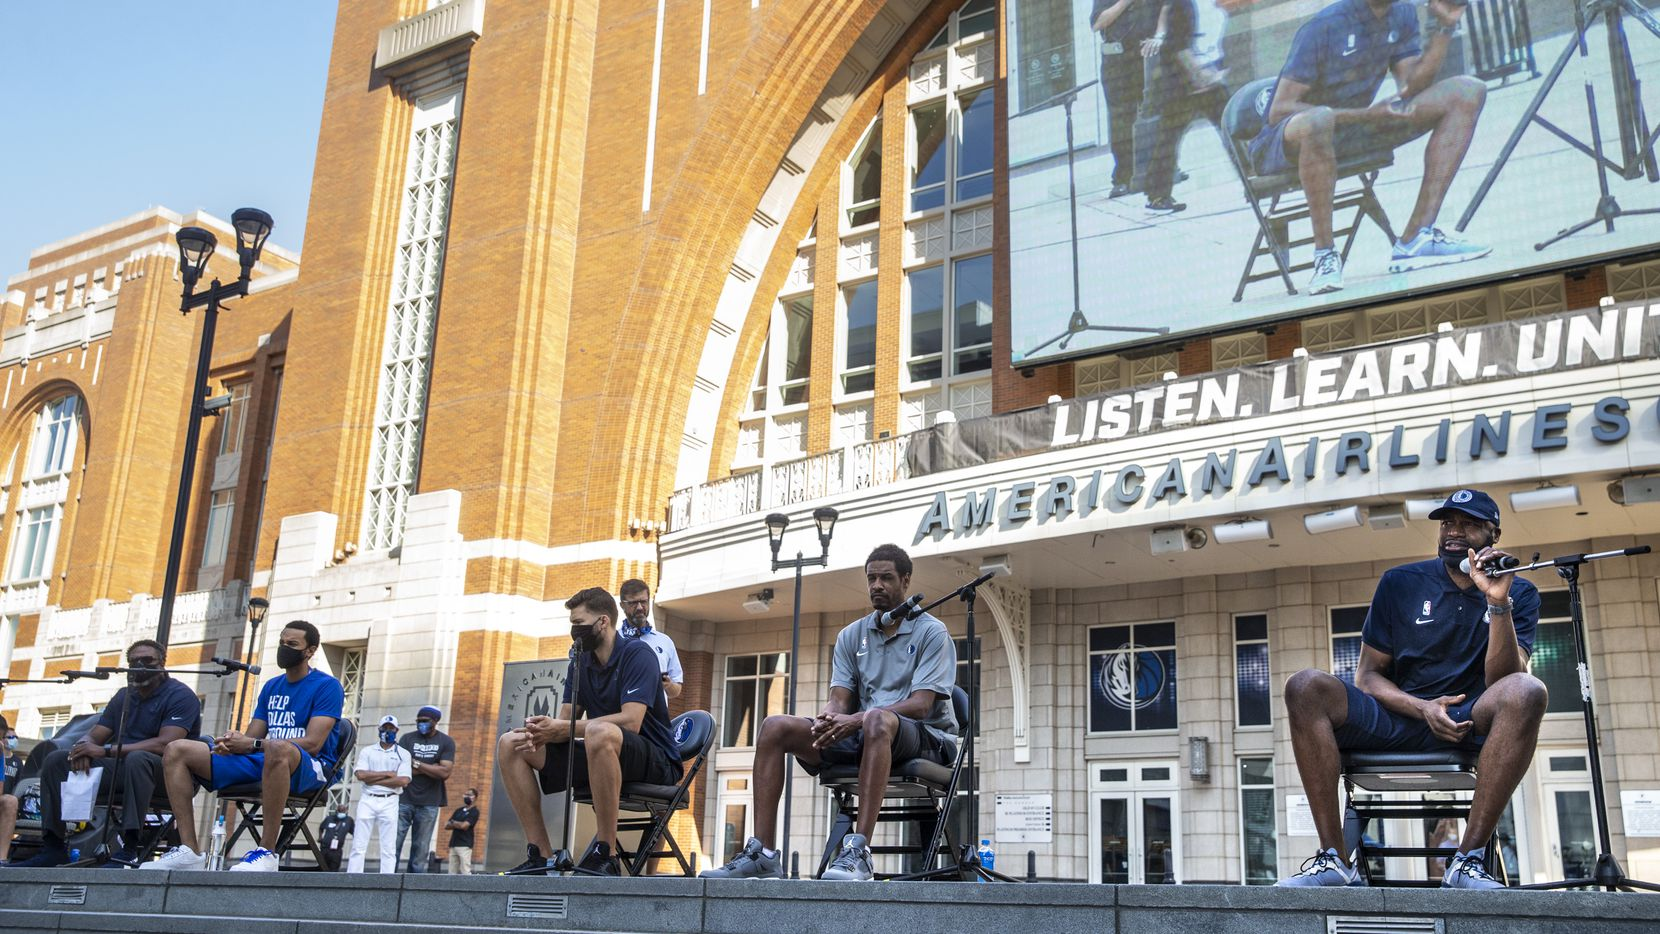 From right, panelists Cedric Ceballos, assistant coach Stephen Siles, forward Maxi Kleber, Sekou Lewis and assistant Jamahl Mosley speak during a ÒCourageous ConversationsÓ meet-up to discuss systemic racism at Victory Plaza outside the American Airlines Center  in Dallas on Tuesday, June 9, 2020. Dallas Mavericks CEO Cynt Marshall hosted the event with all team employees, including players and coaches, to discuss systemic racism and disparities facing the African-American community.